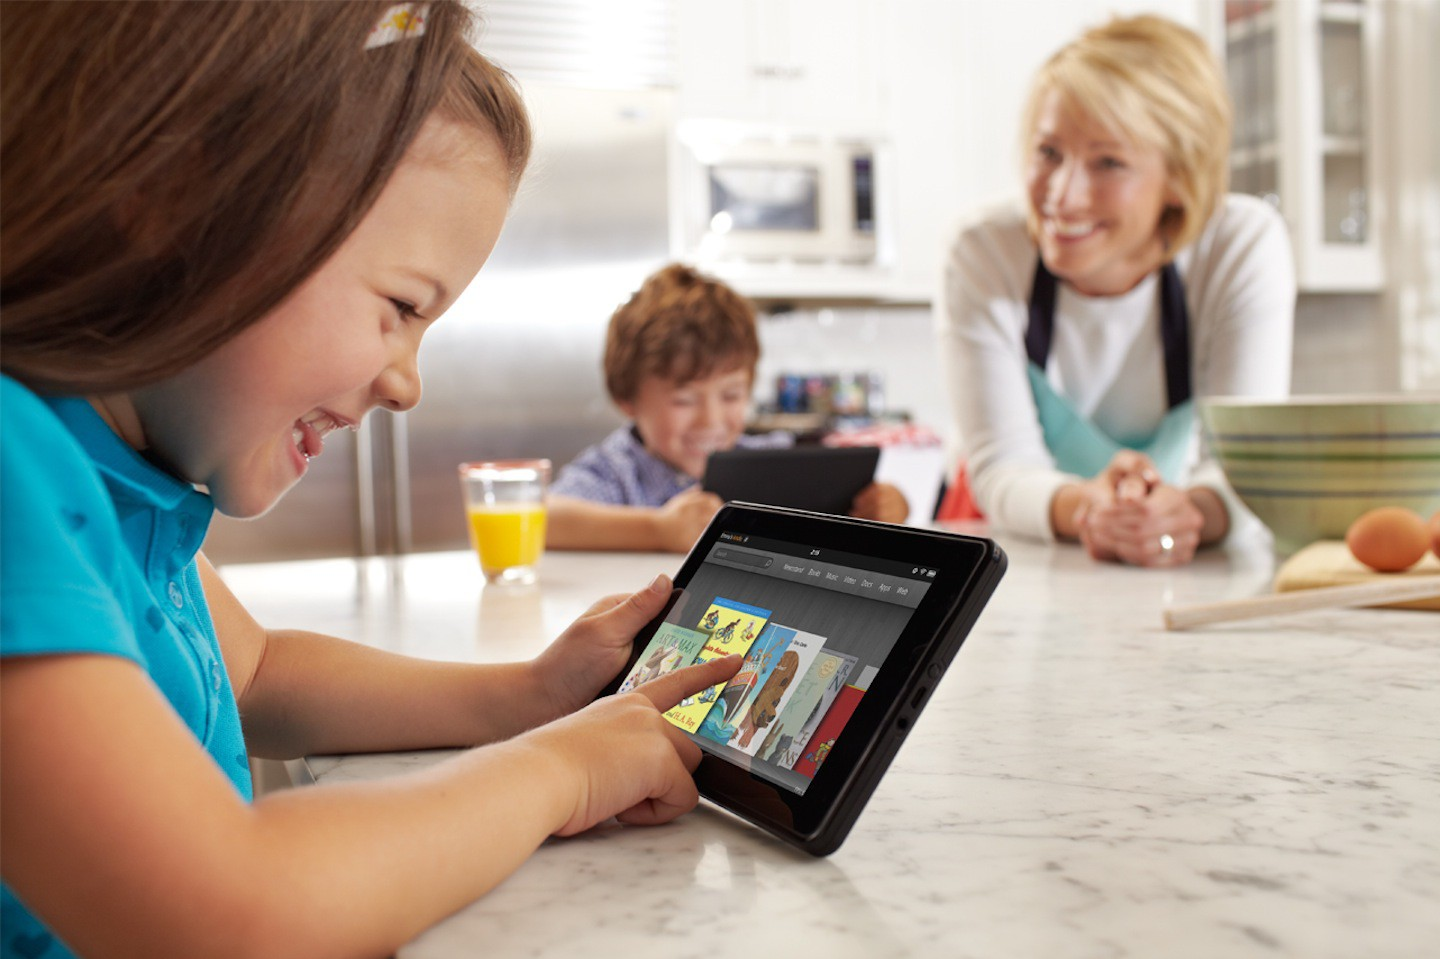 Kindle Fire: Amazons Android-Tablet mit Cloud-Anbindung - Android-Tablet Kindle Fire (Bild: Amazon)